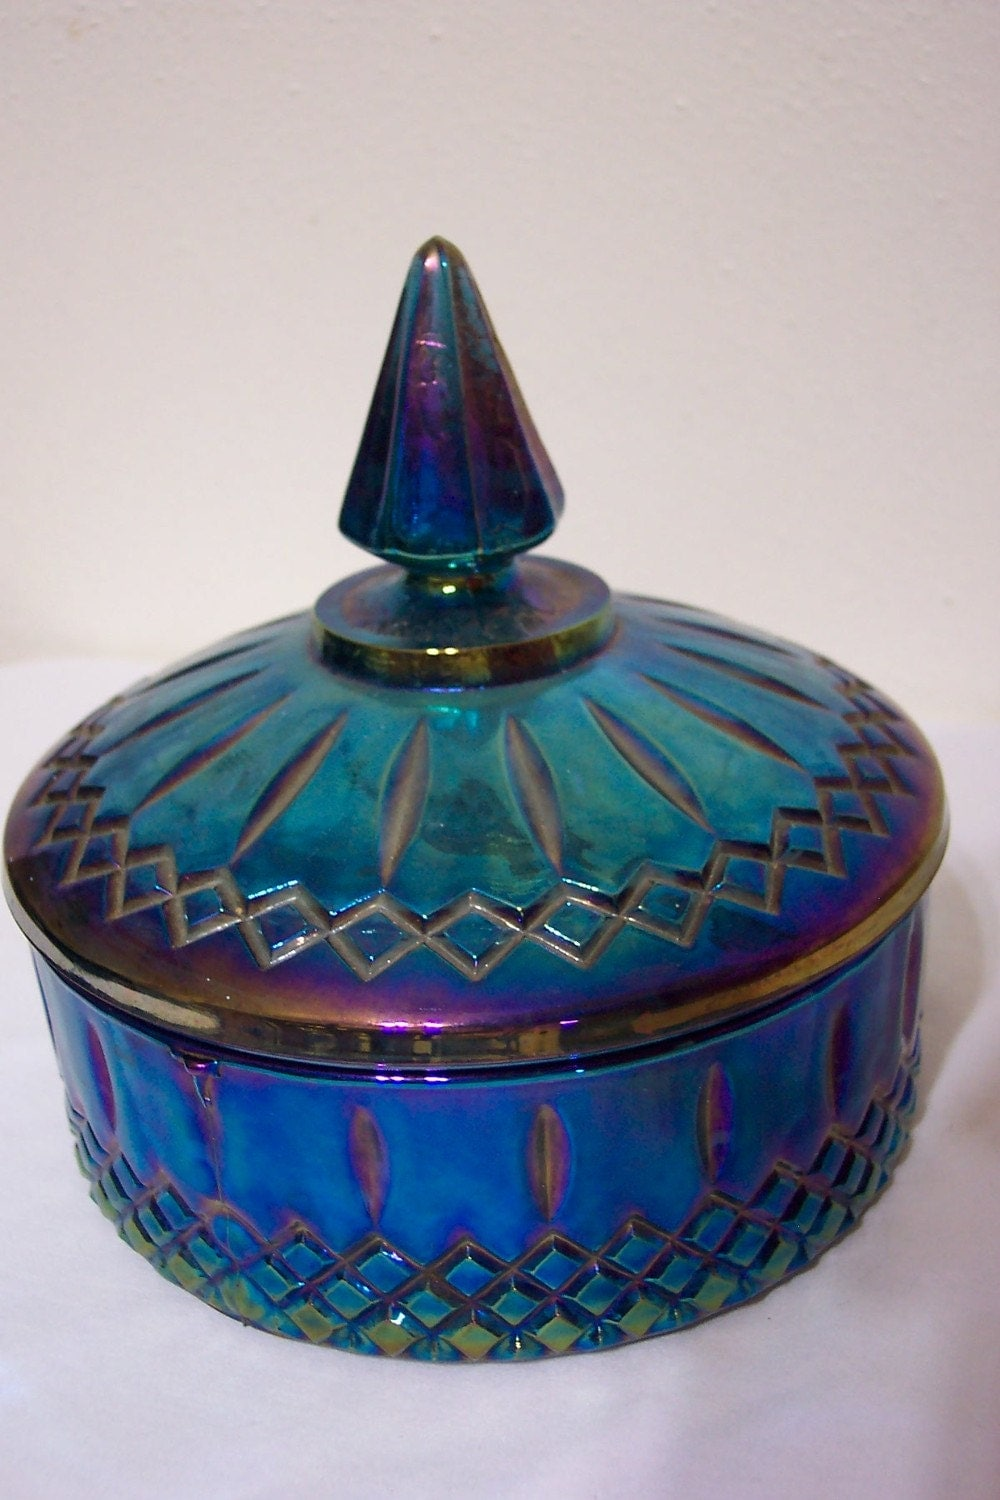 Blue Carnival Glass Covered Candy Dish From The 1960s